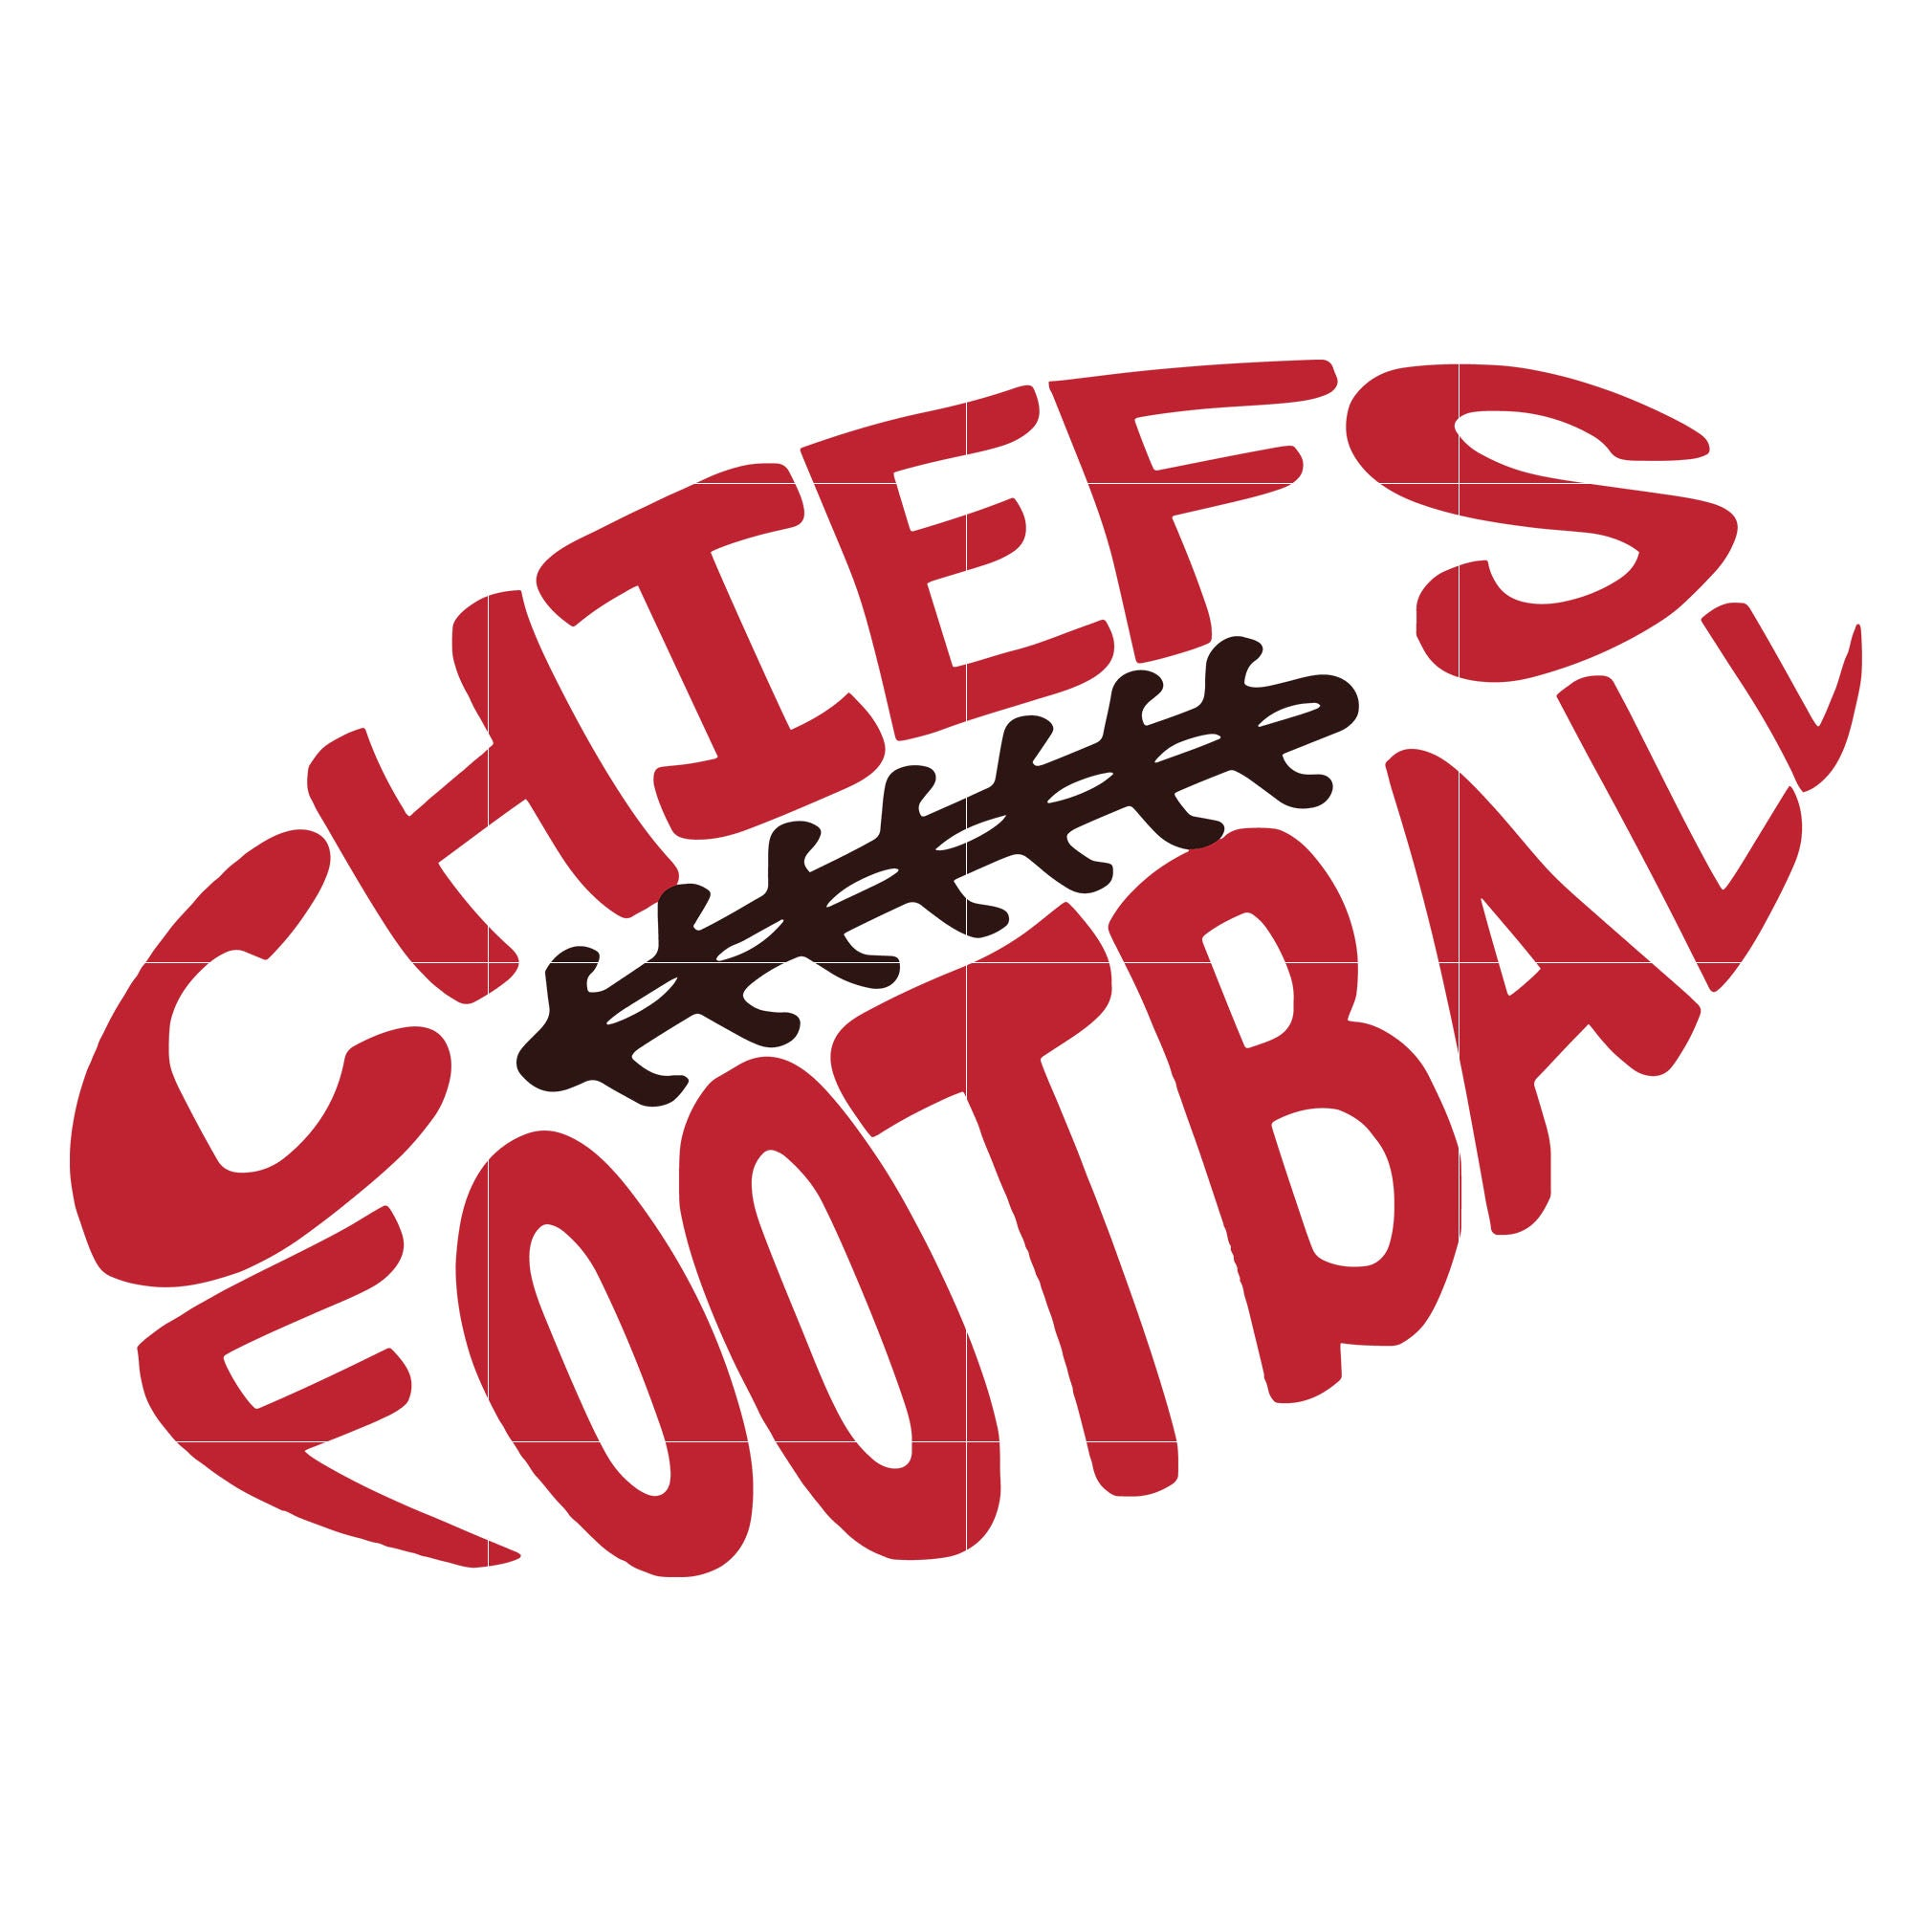 Chiefs football svg, city chiefs svg, chiefs svg for cut